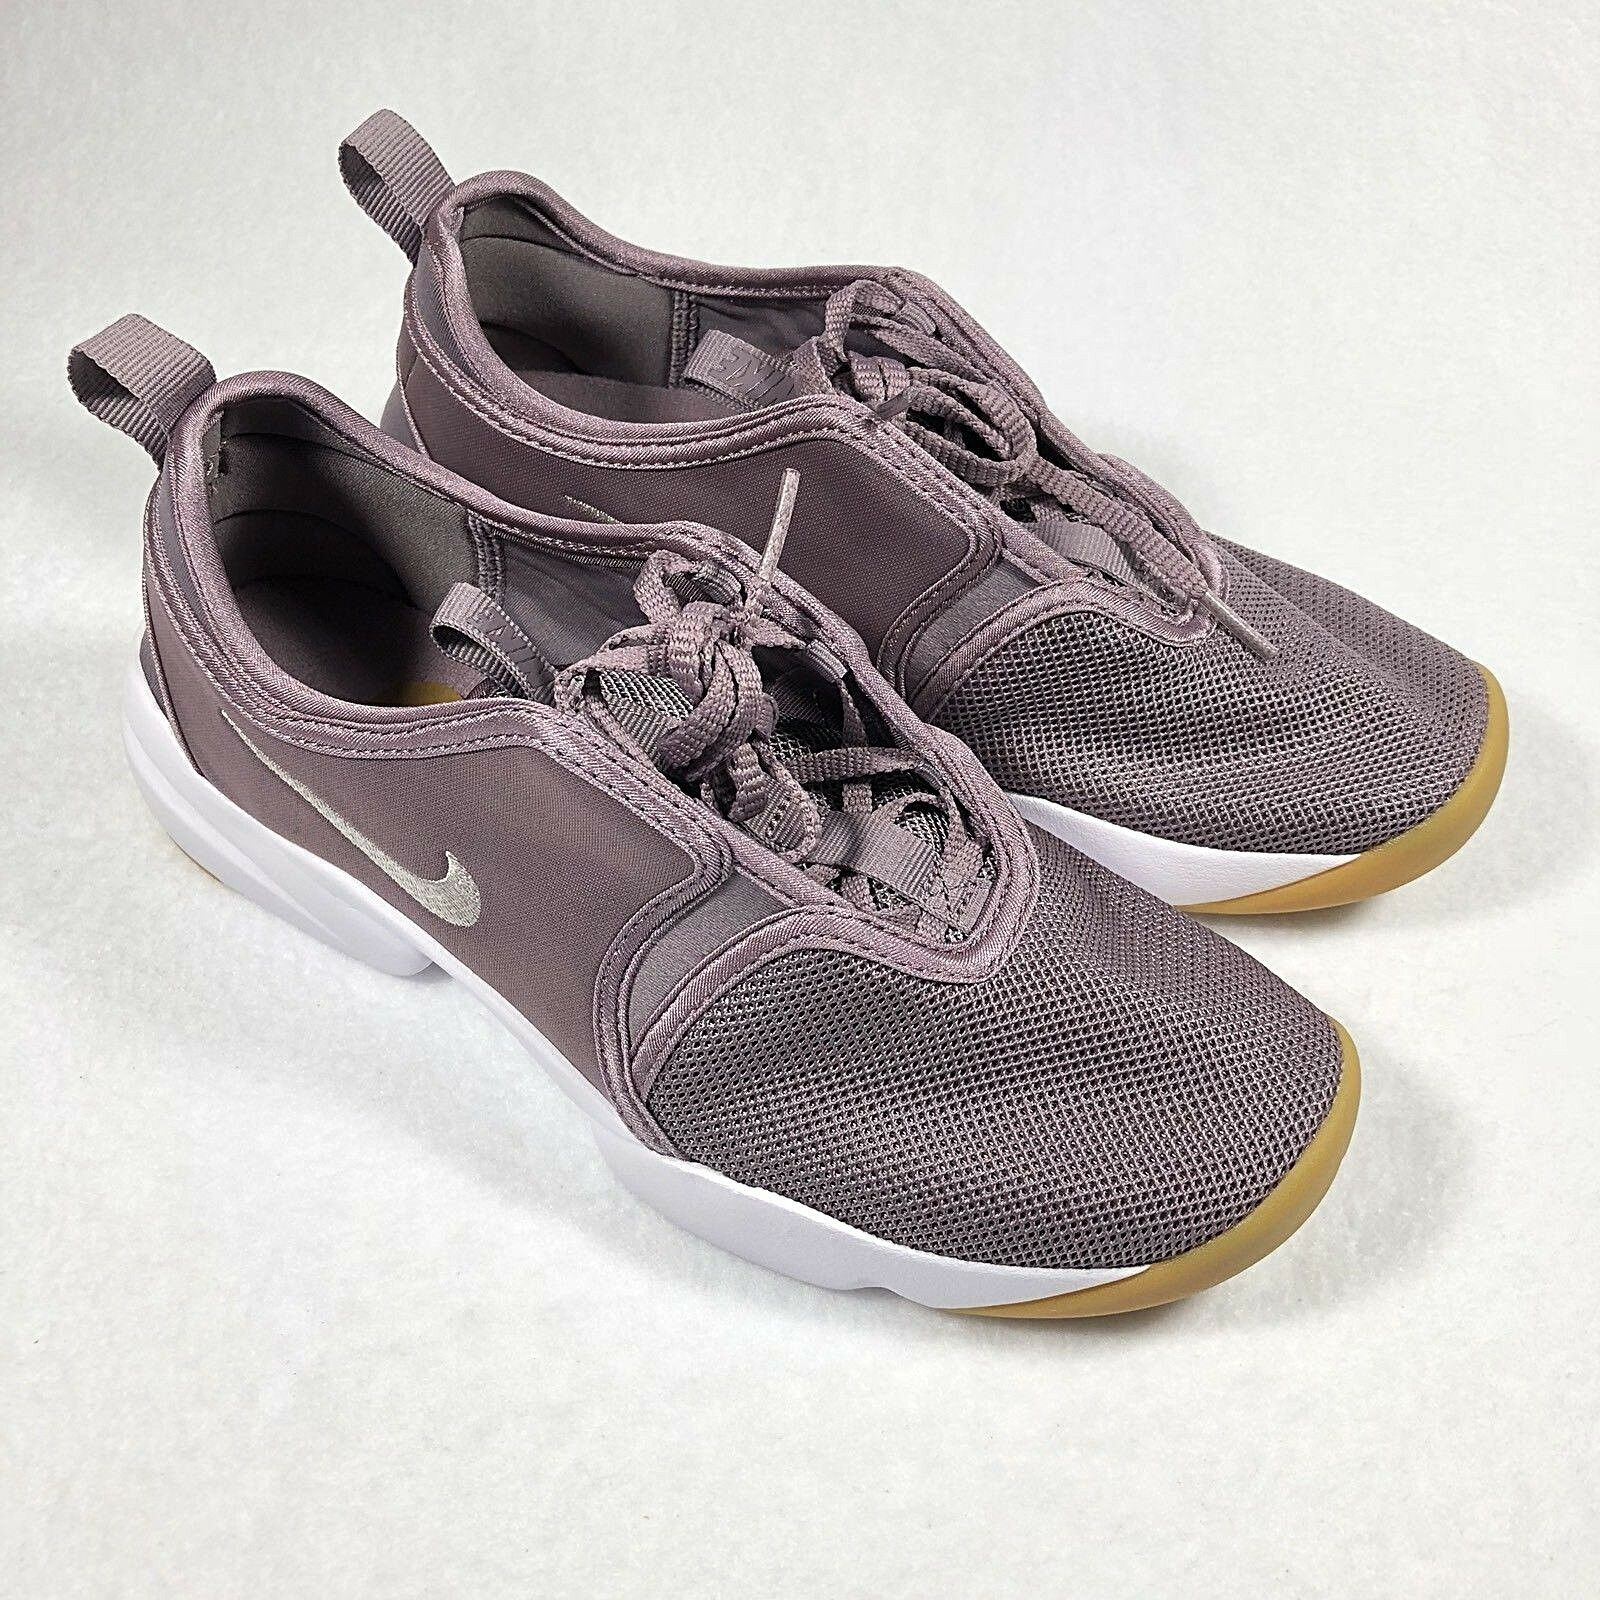 NEW Nike Loden Women's Running Shoes Taupe Gray Sz 8  (896298-200)